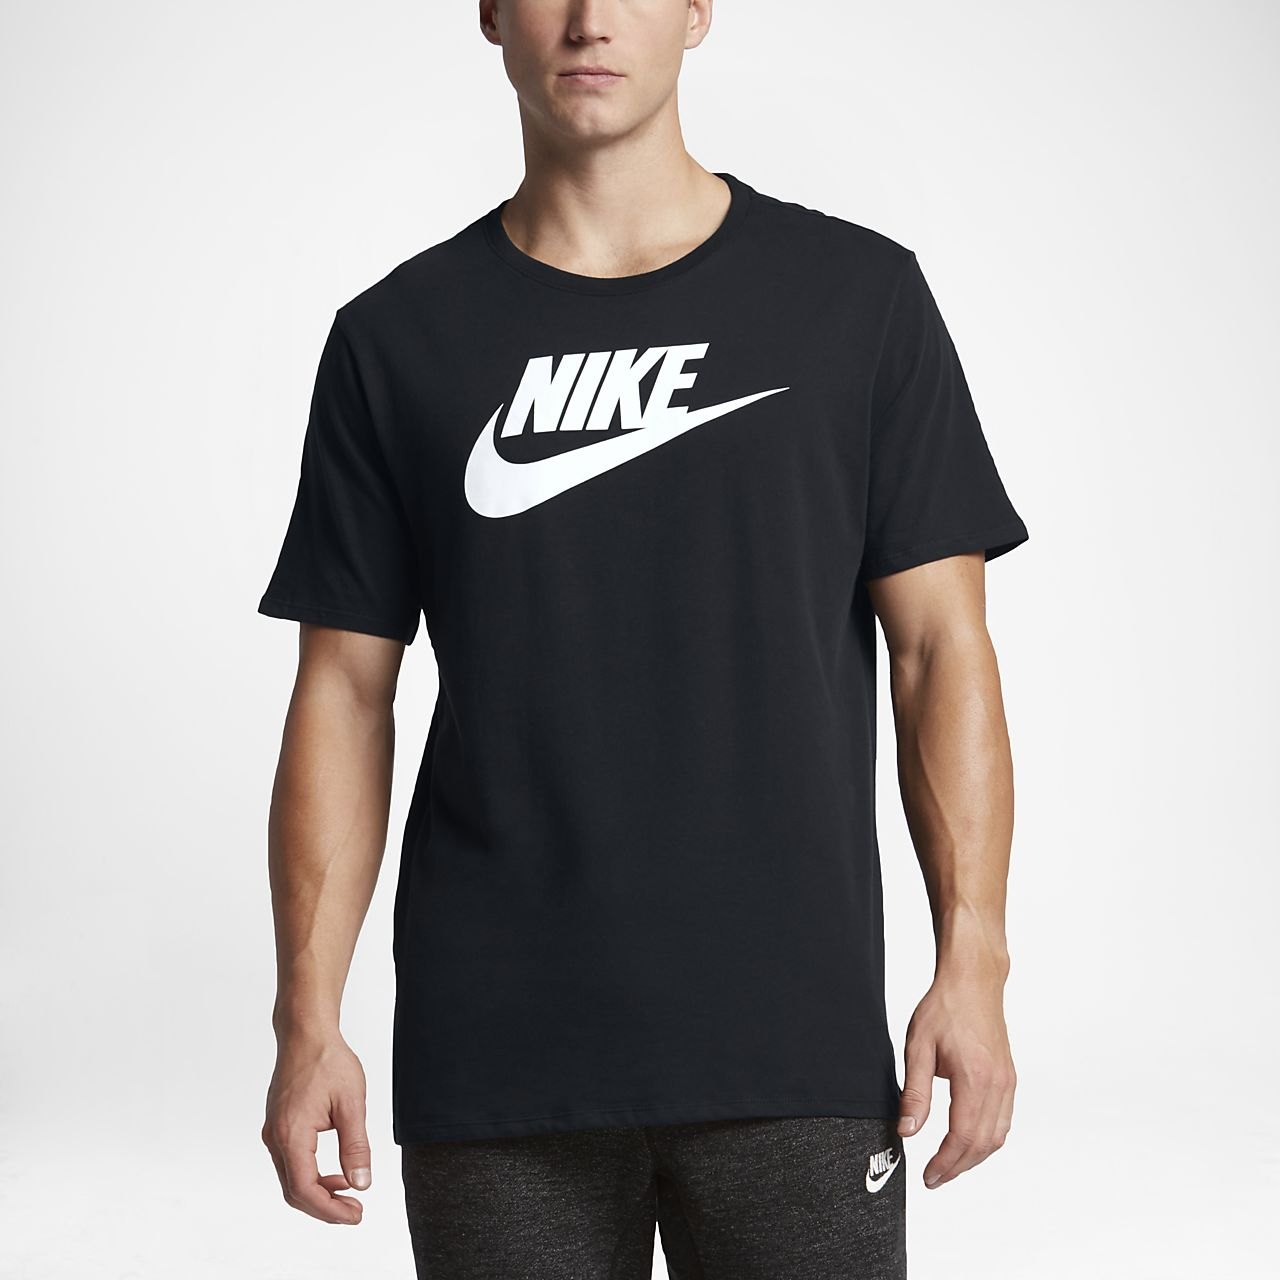 nike sportswear men 39 s logo t shirt ma. Black Bedroom Furniture Sets. Home Design Ideas